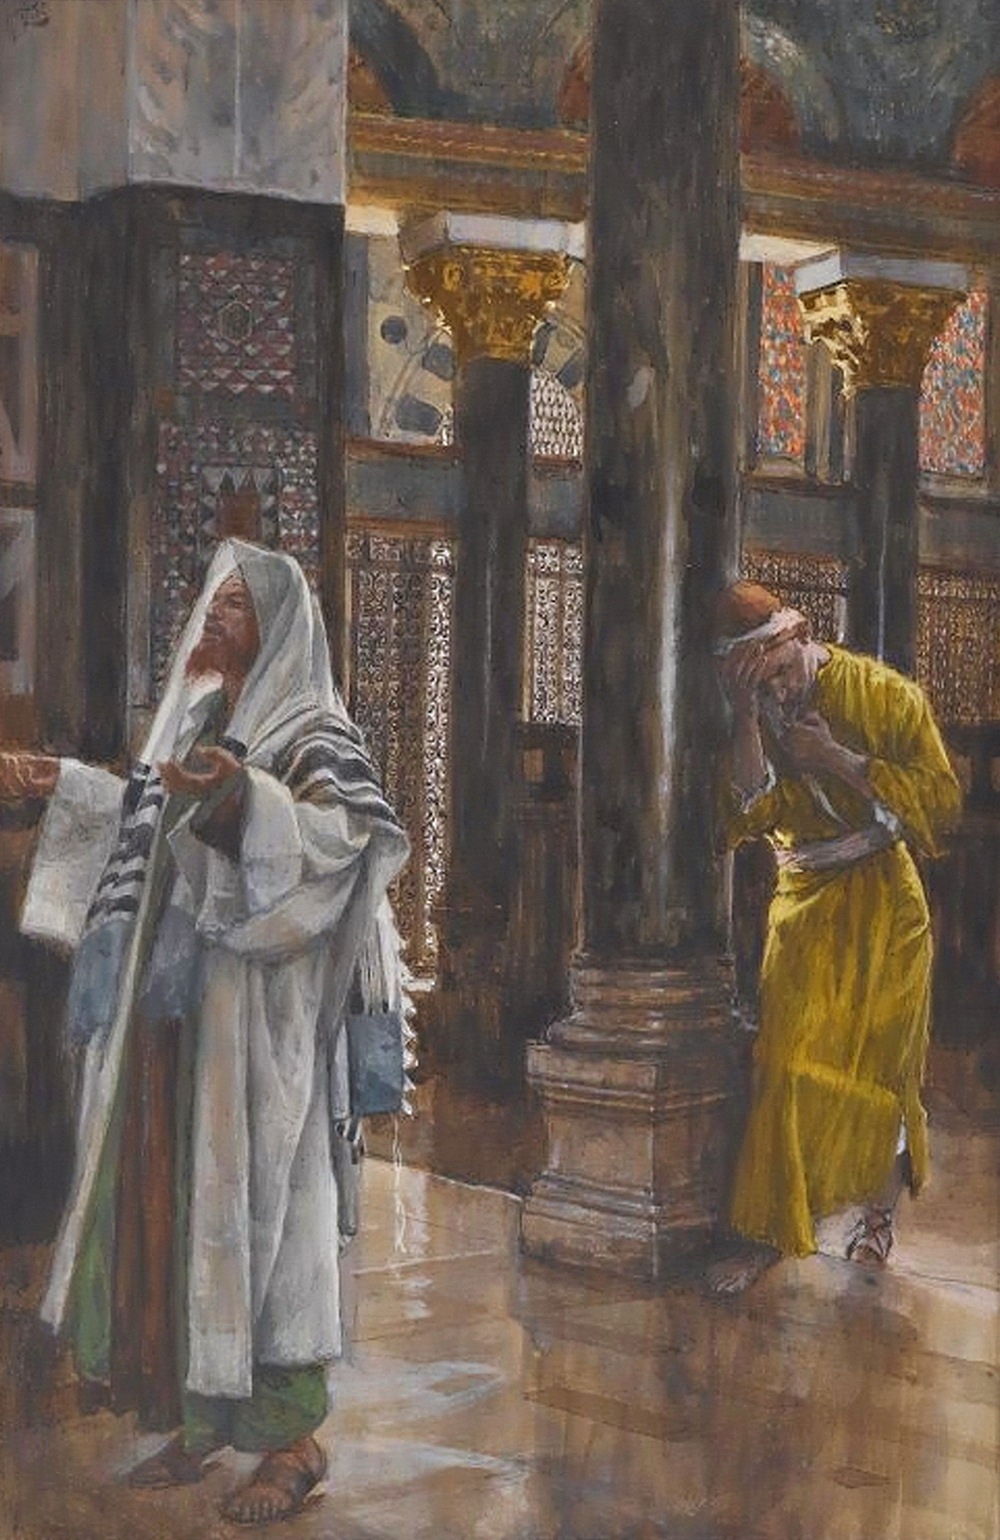 james-jacques-joseph-tissot-the-pharisee-and-the-publican-1894